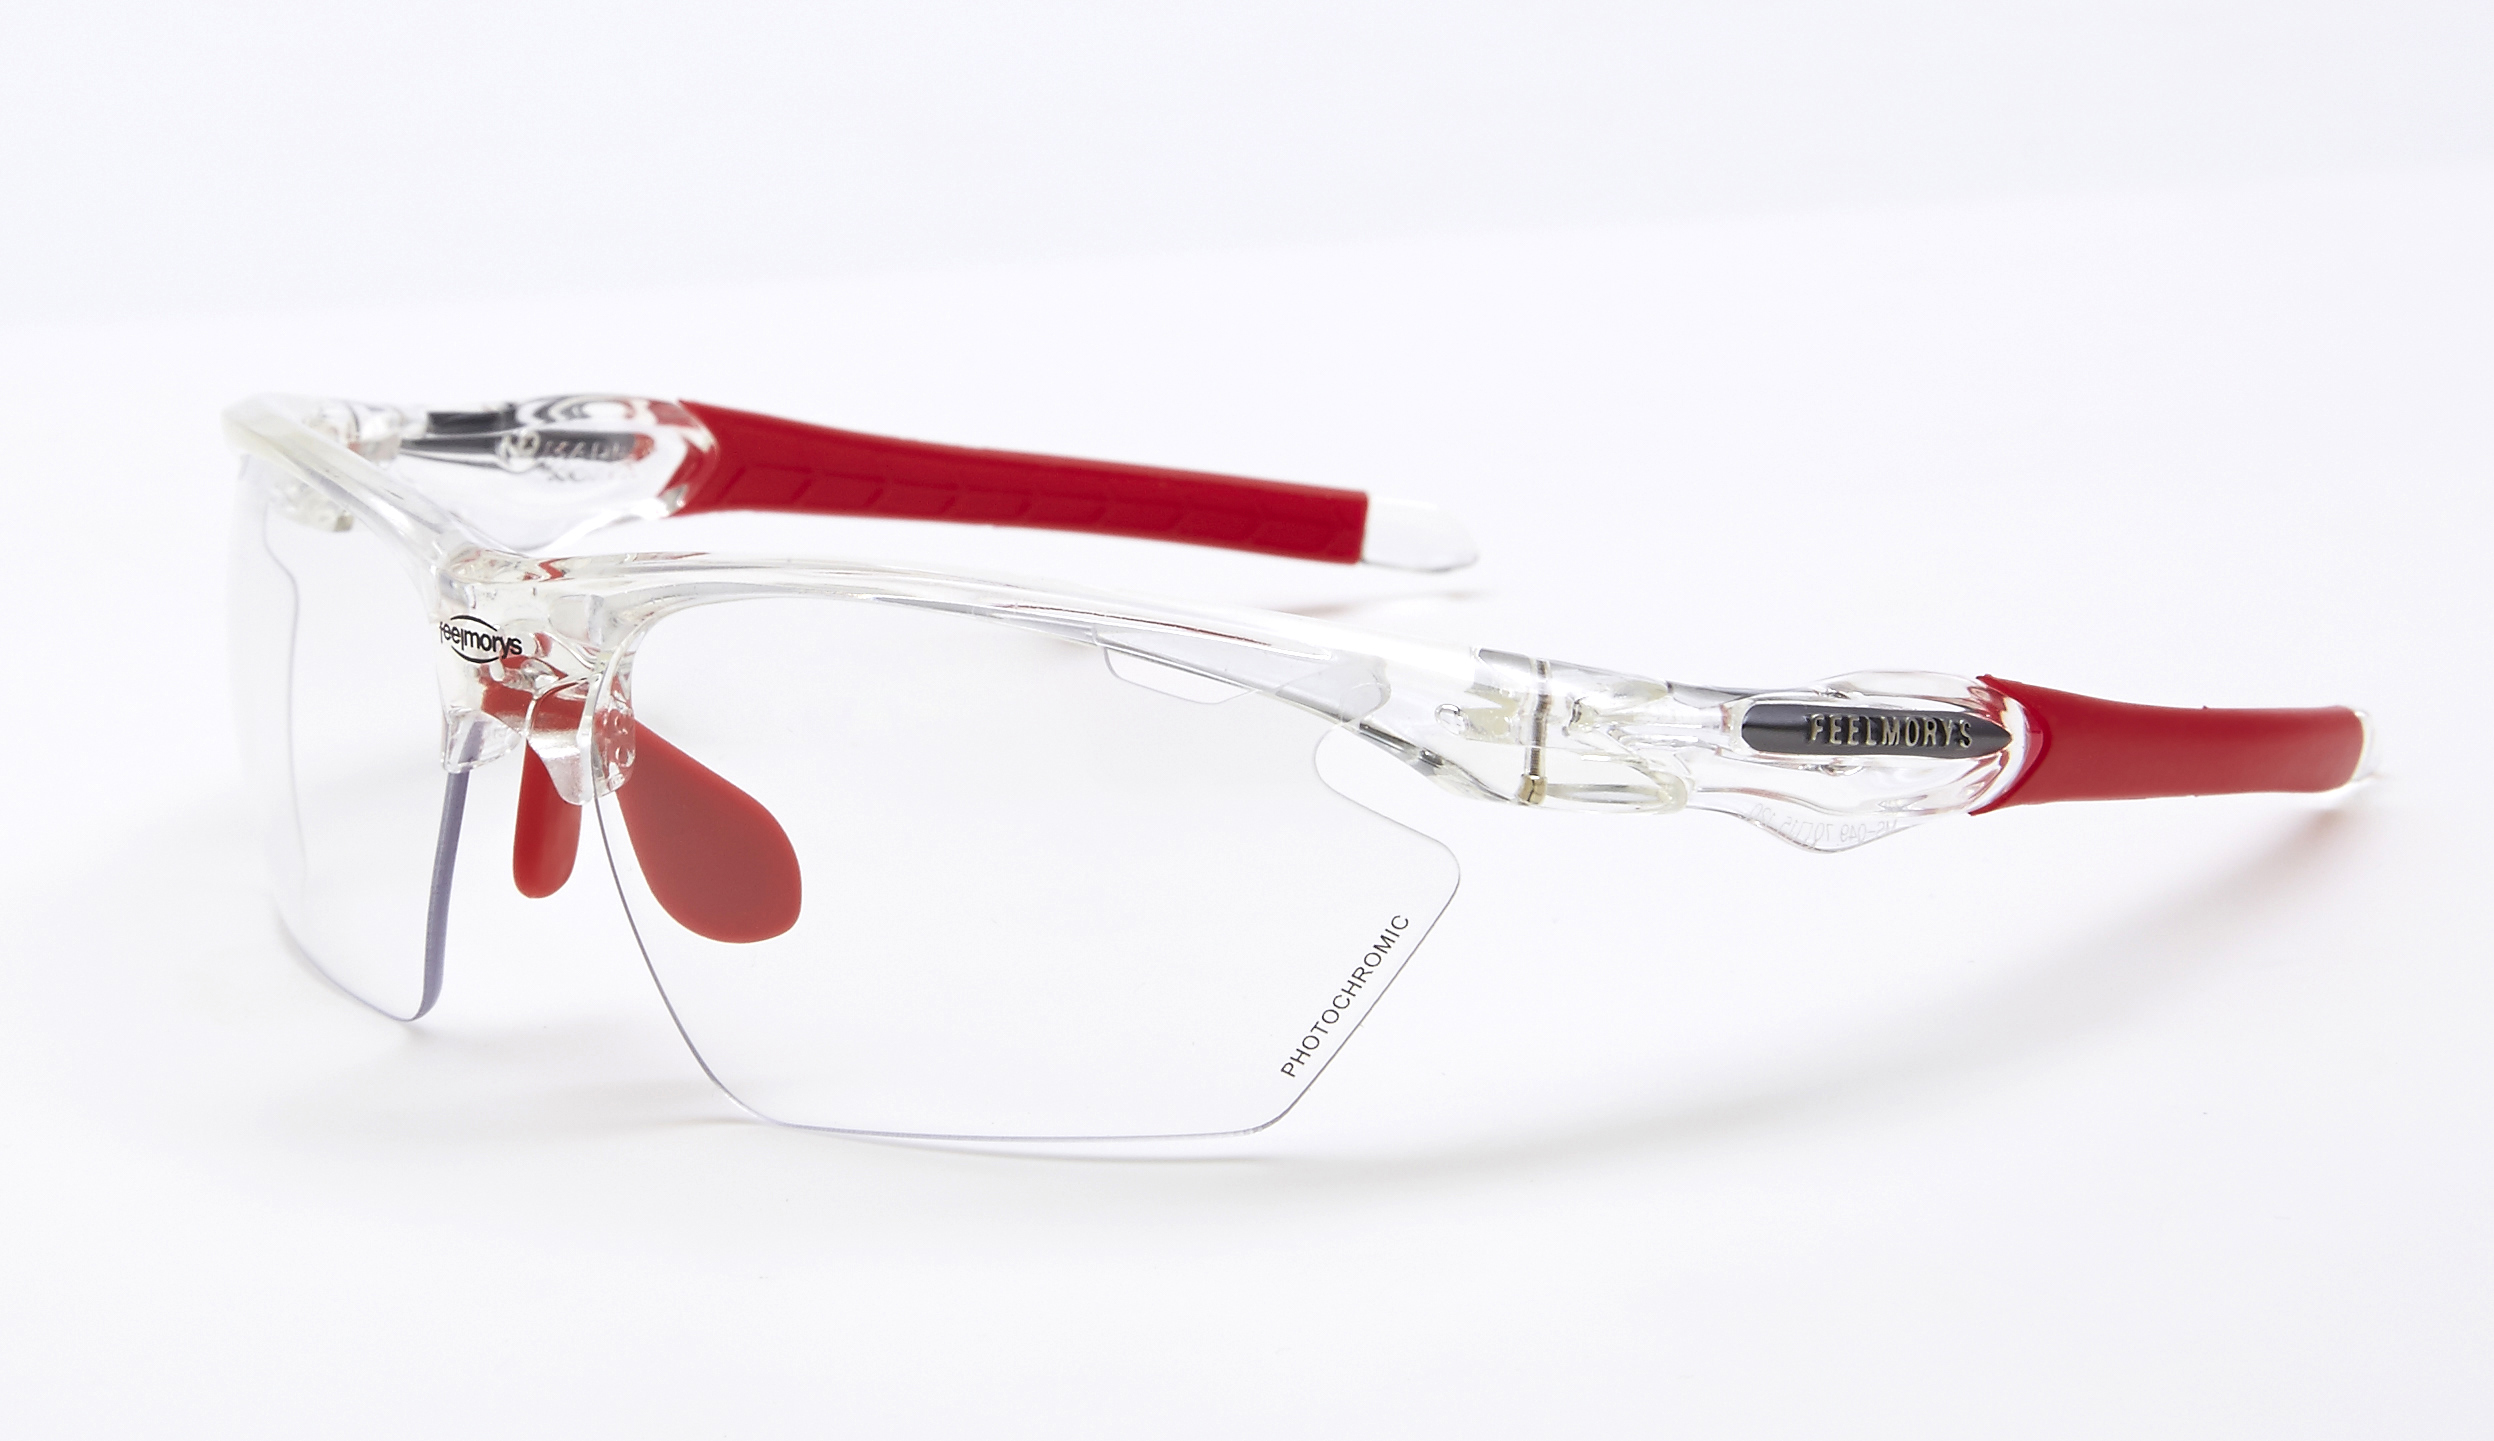 lateral feel morys ms-049 fotocromatica blanca transparente